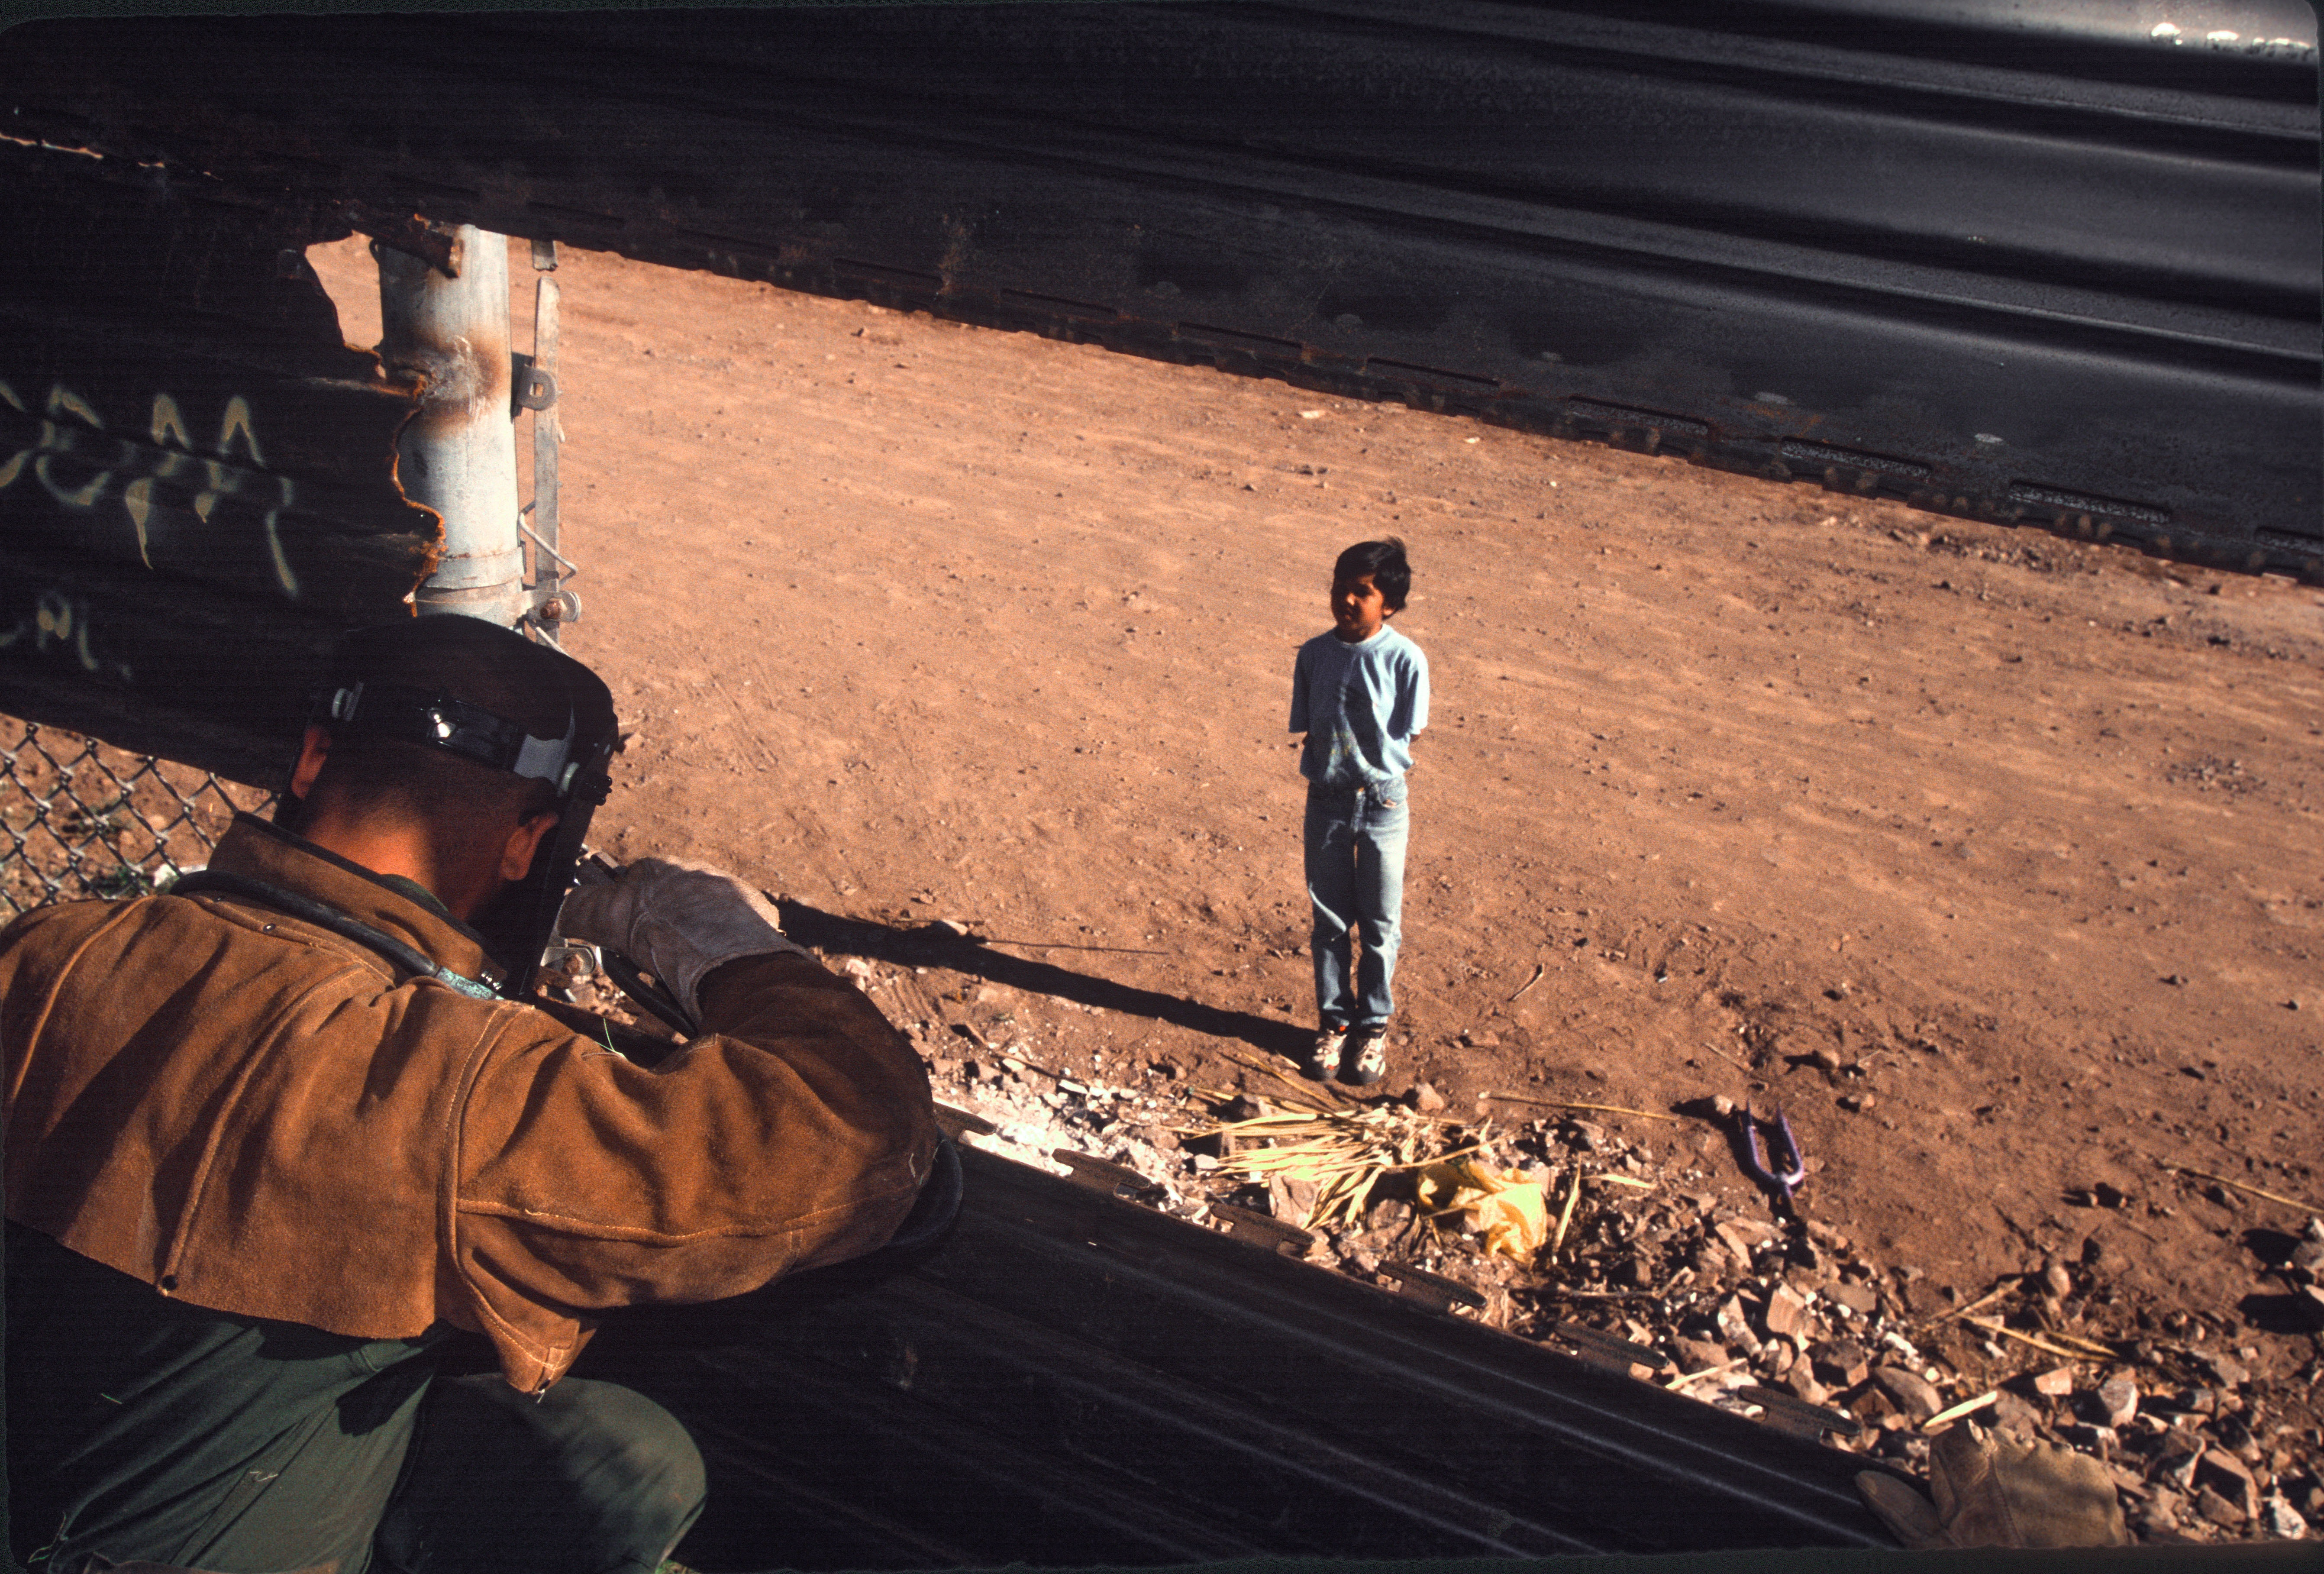 NOGALES, AZ - APRIL 10: United States army engineers extend a border wall as a Mexican boy on the other side watches on April 10, 1995 on the outskirts of Nogales, Arizona.(Photo by Andrew Lichtenstein/Corbis via Getty Images)